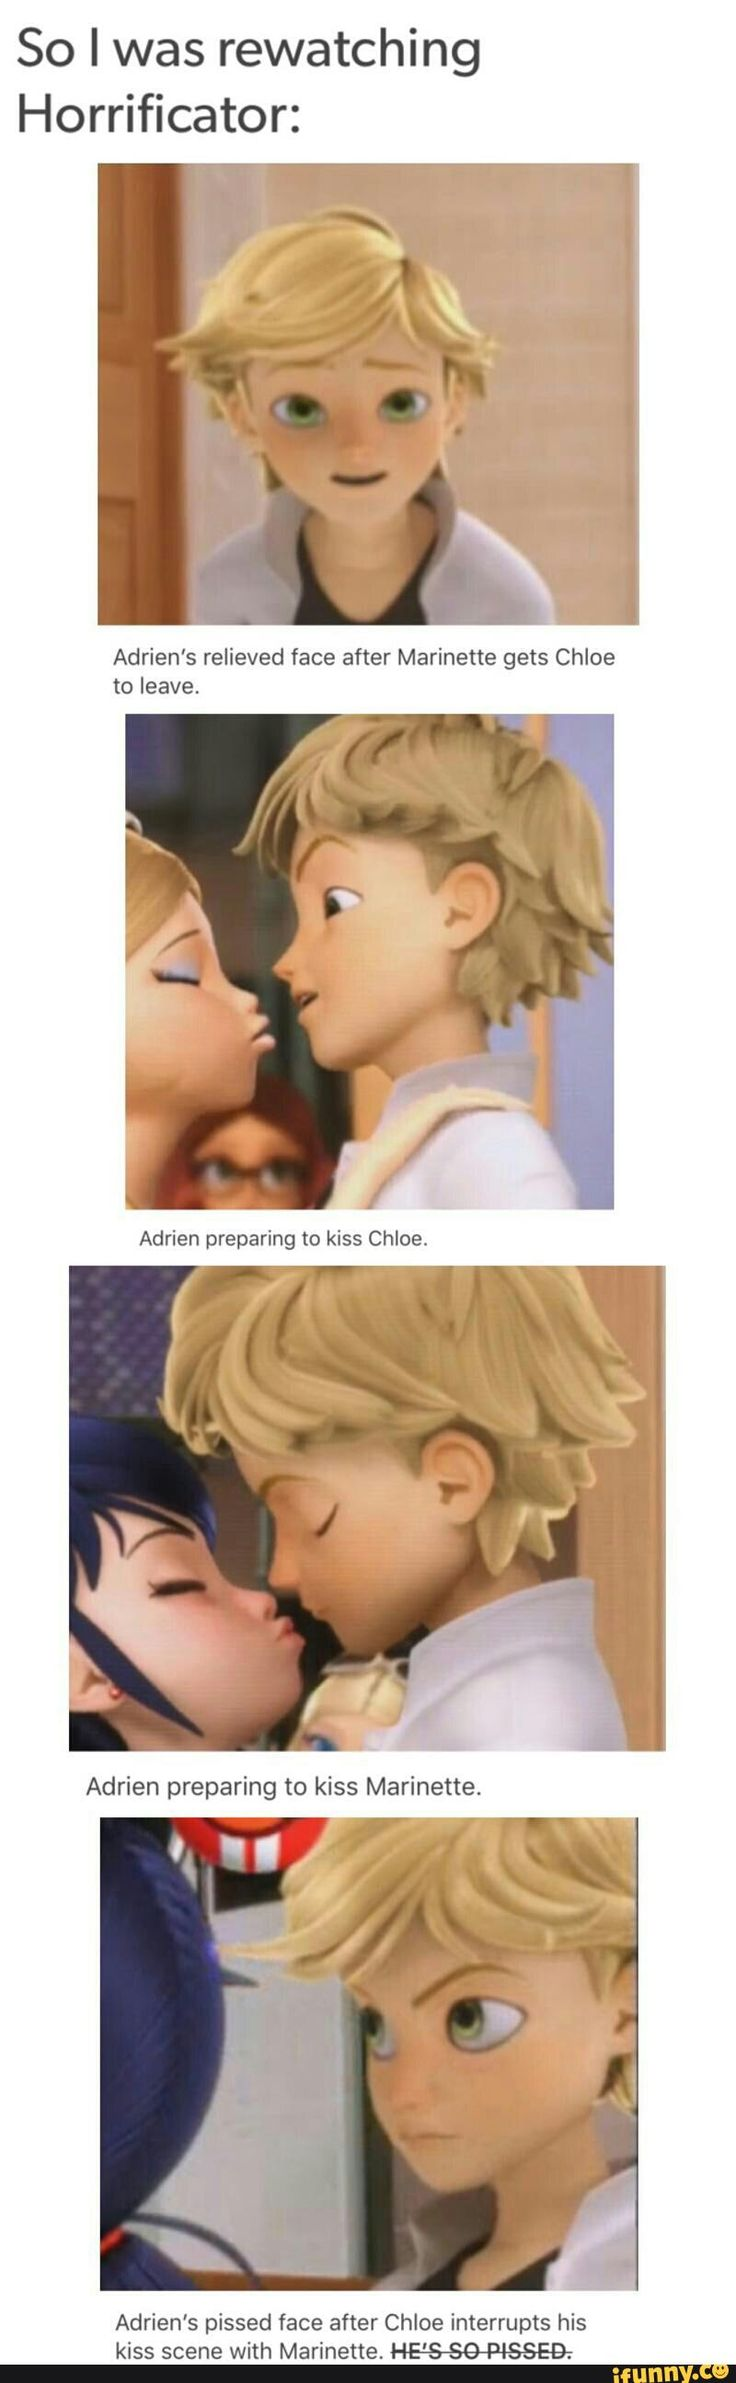 Adrien is totally crushing on Marinette! He just doesn't know it yet!